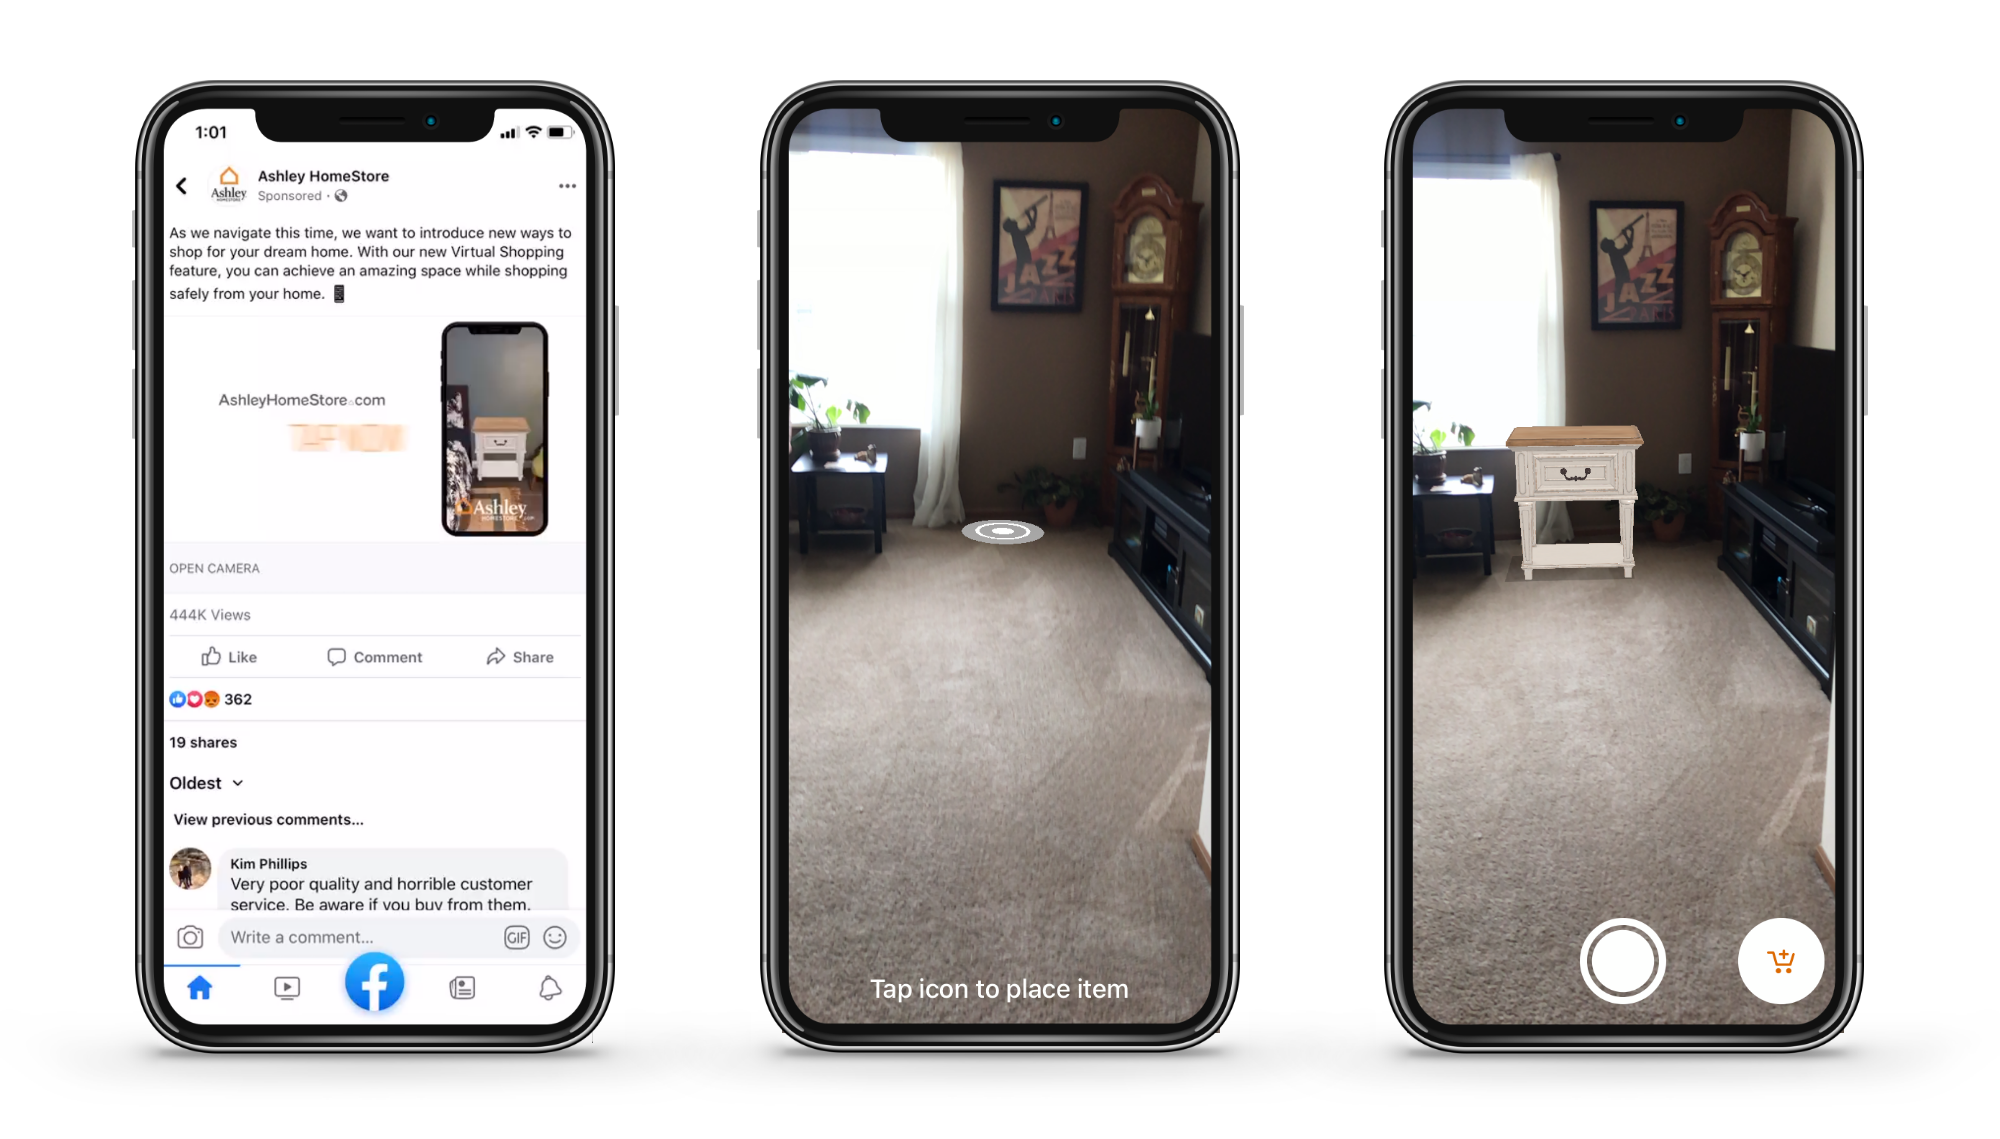 3 phone images; 1 showing Ashley HomeStore site, 1 showing a room and 1 showing a room with a table inserted